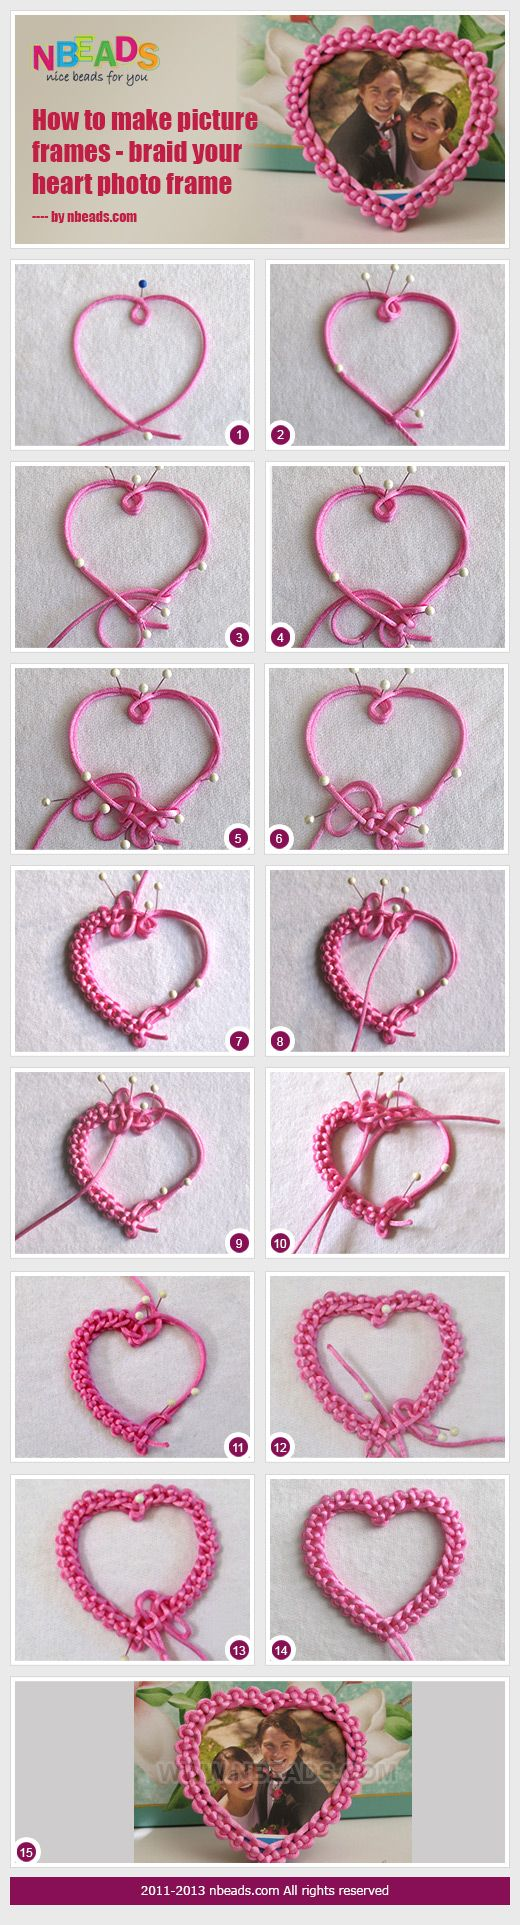 how to make picture frames - braid your heart photo frame